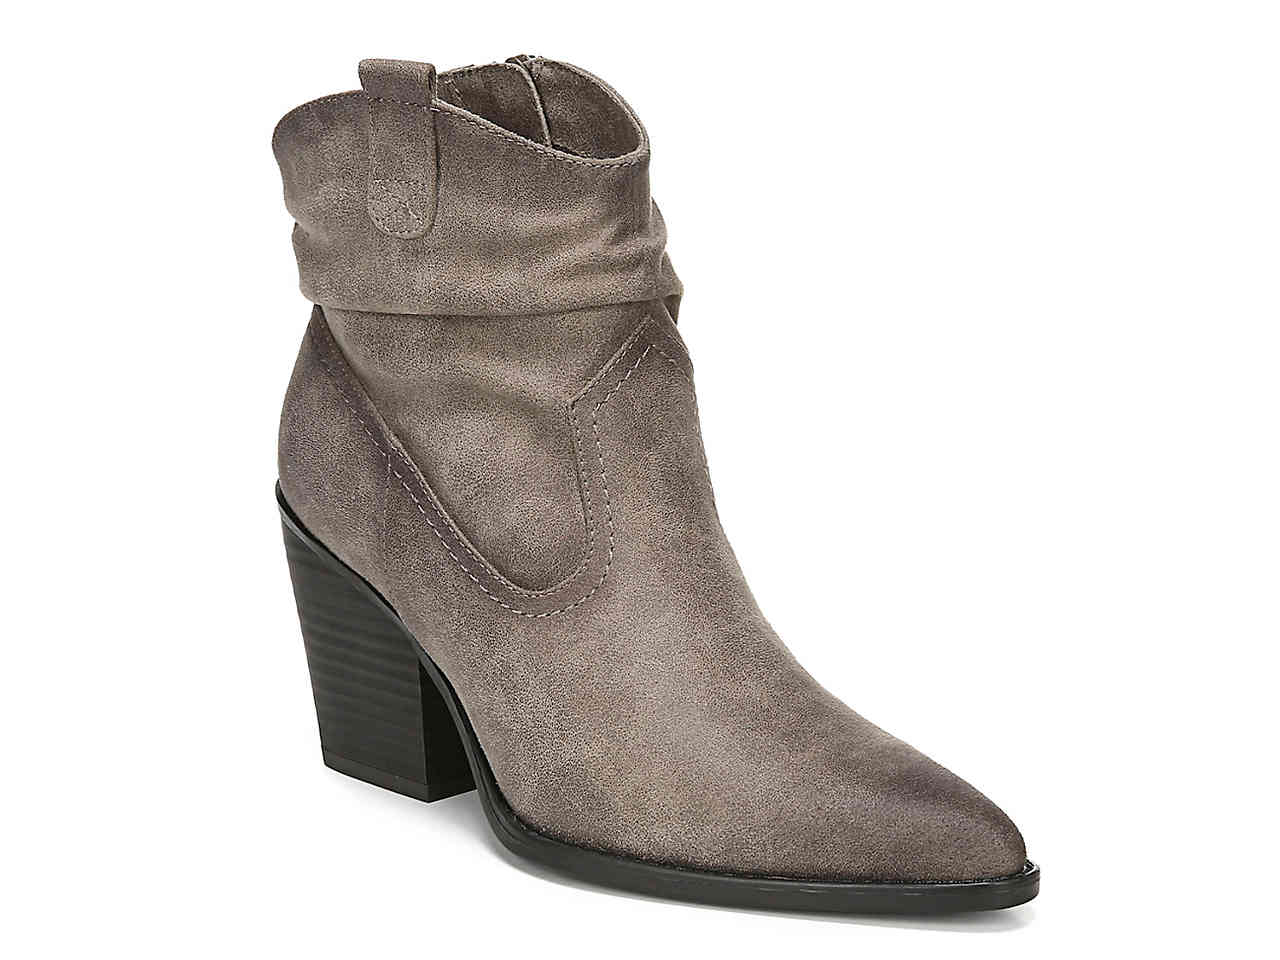 Soul Naturalizer Maxime Western Bootie- Wide width boots at DSW